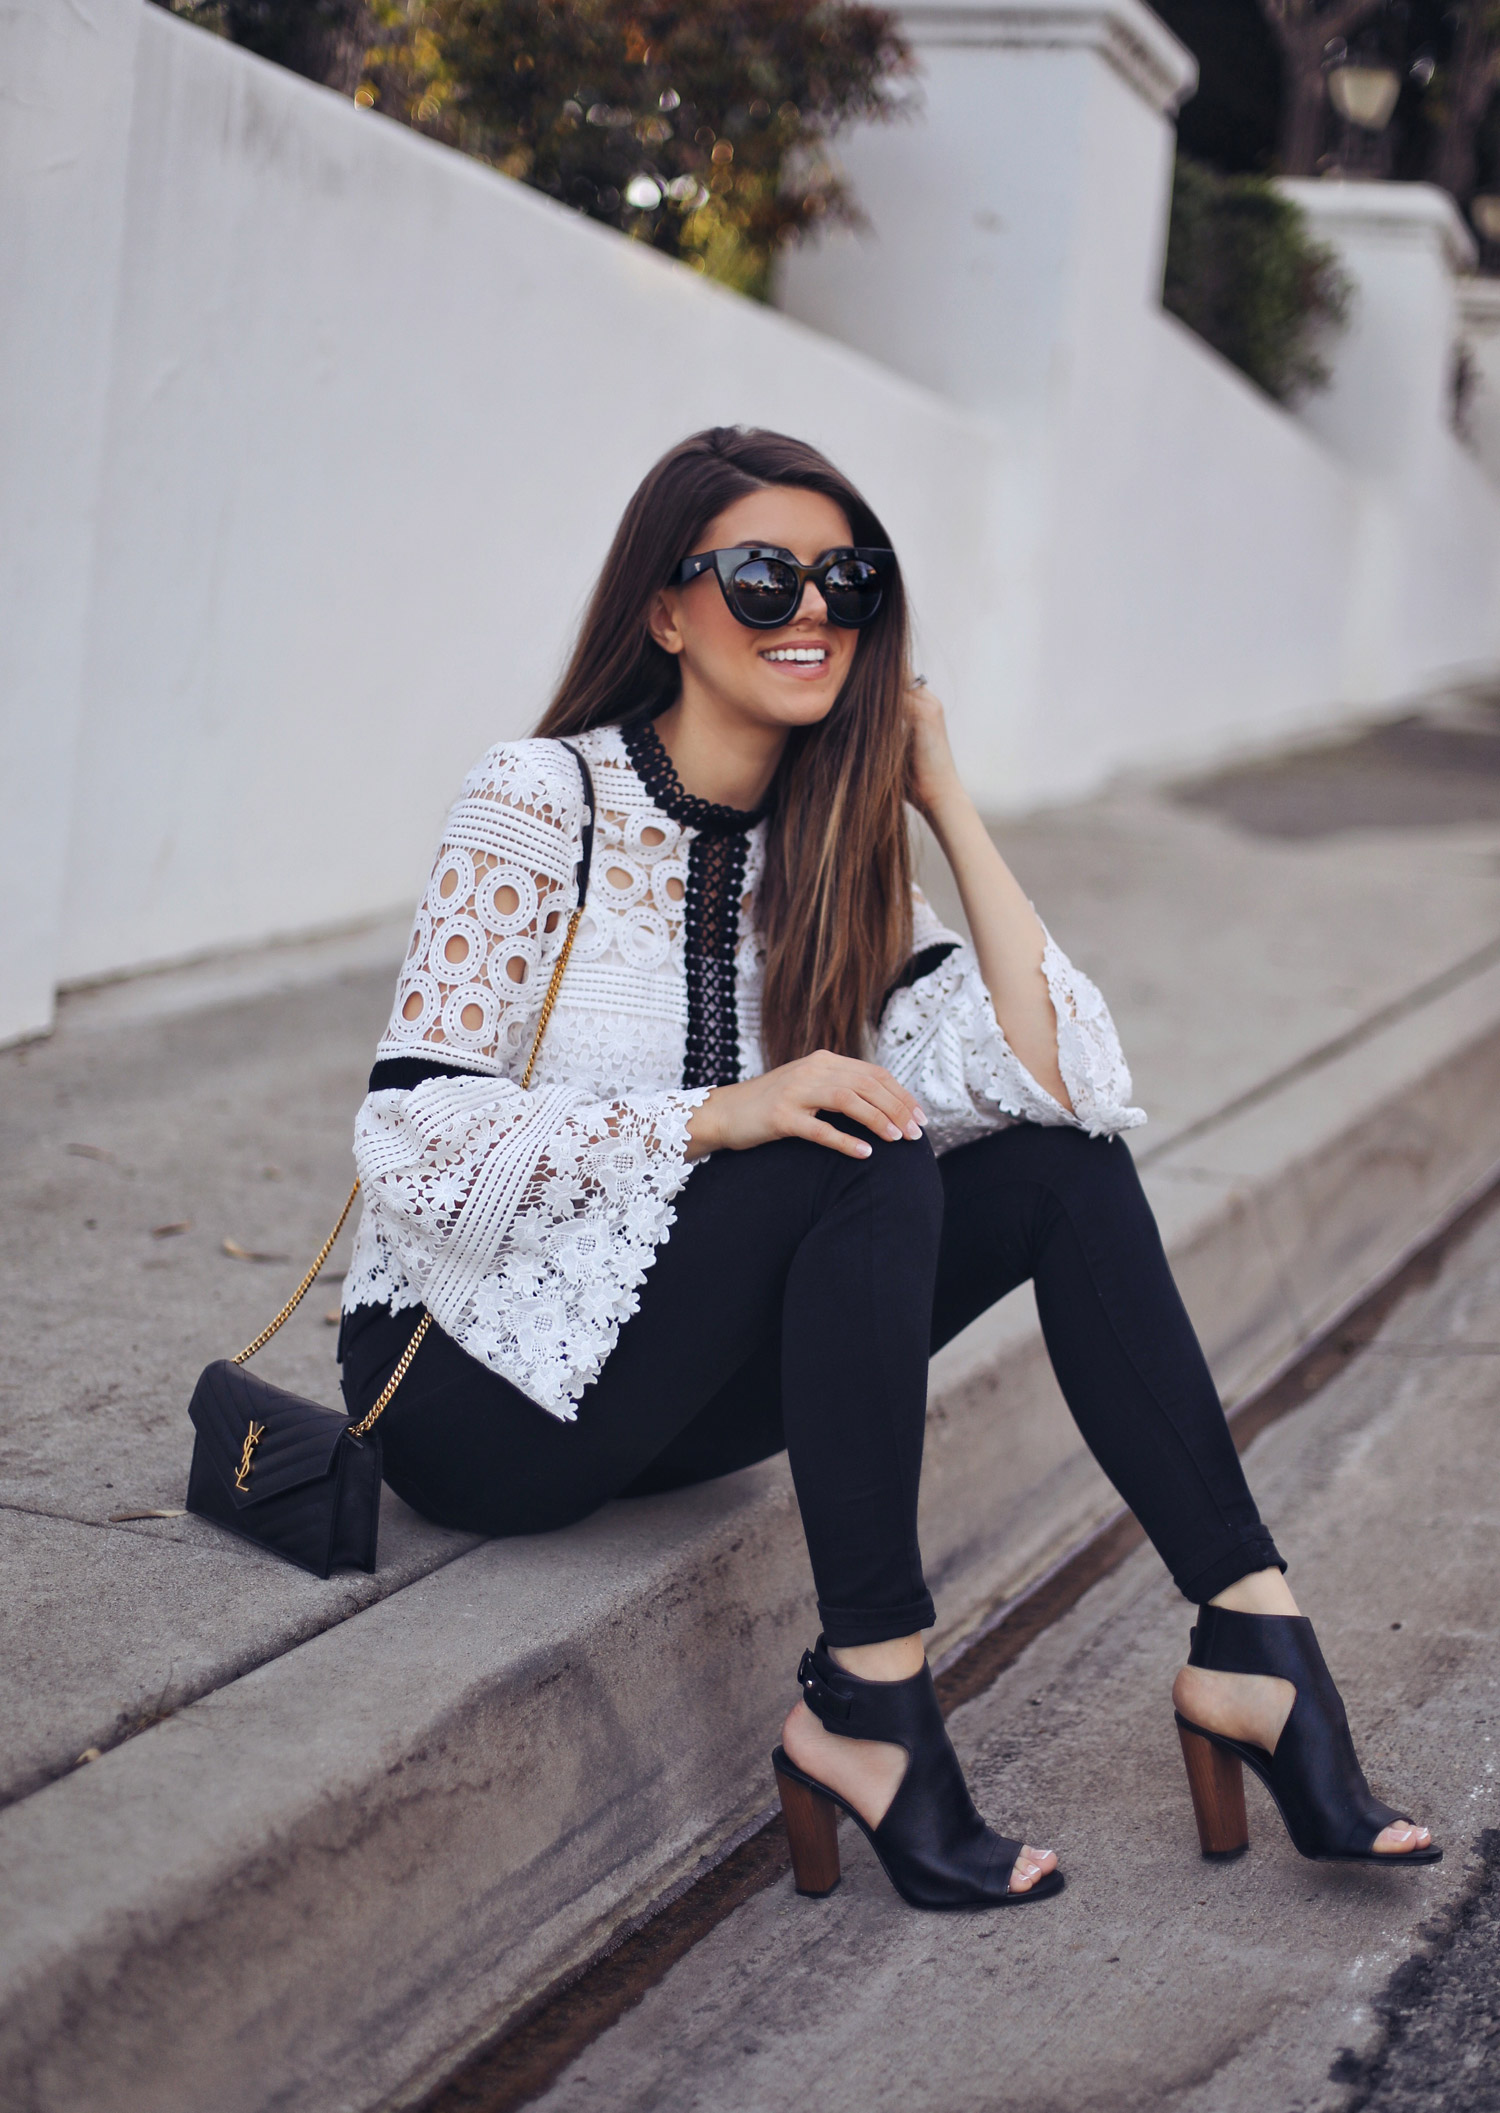 Fashion and lifestyle blogger Adelina Perrin of The Charming Olive wearing Chicwish Top, Mott & Bow Jeans, Vince Shoes and Saint Laurent Black Crossbody